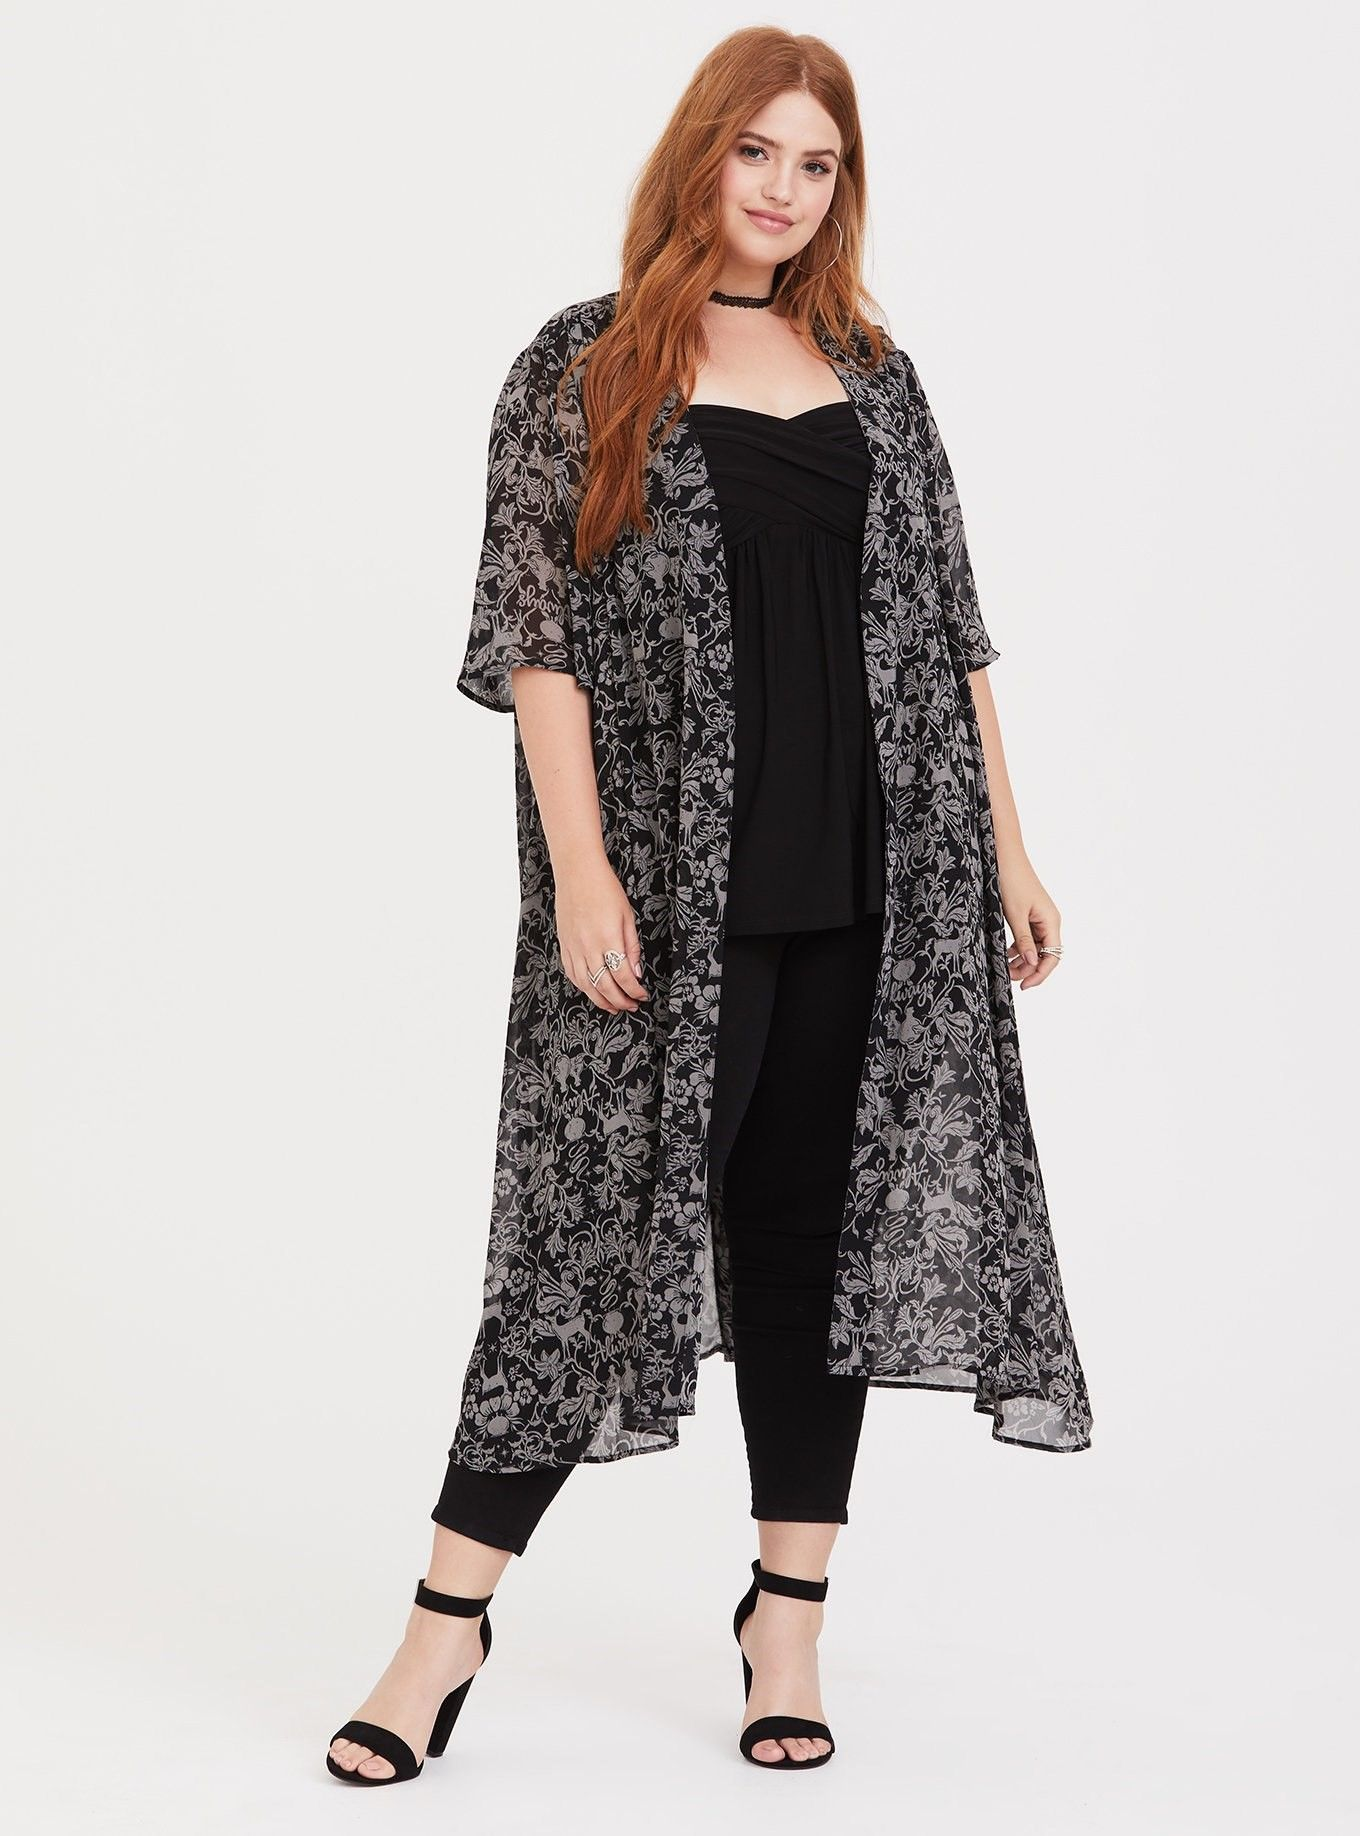 9aced15bed7 Harry Potter Baroque Snape Chiffon Kimono - A subtle yet magical Harry  Potter themed chiffon kimono is airy and has goes-with-everything appeal.